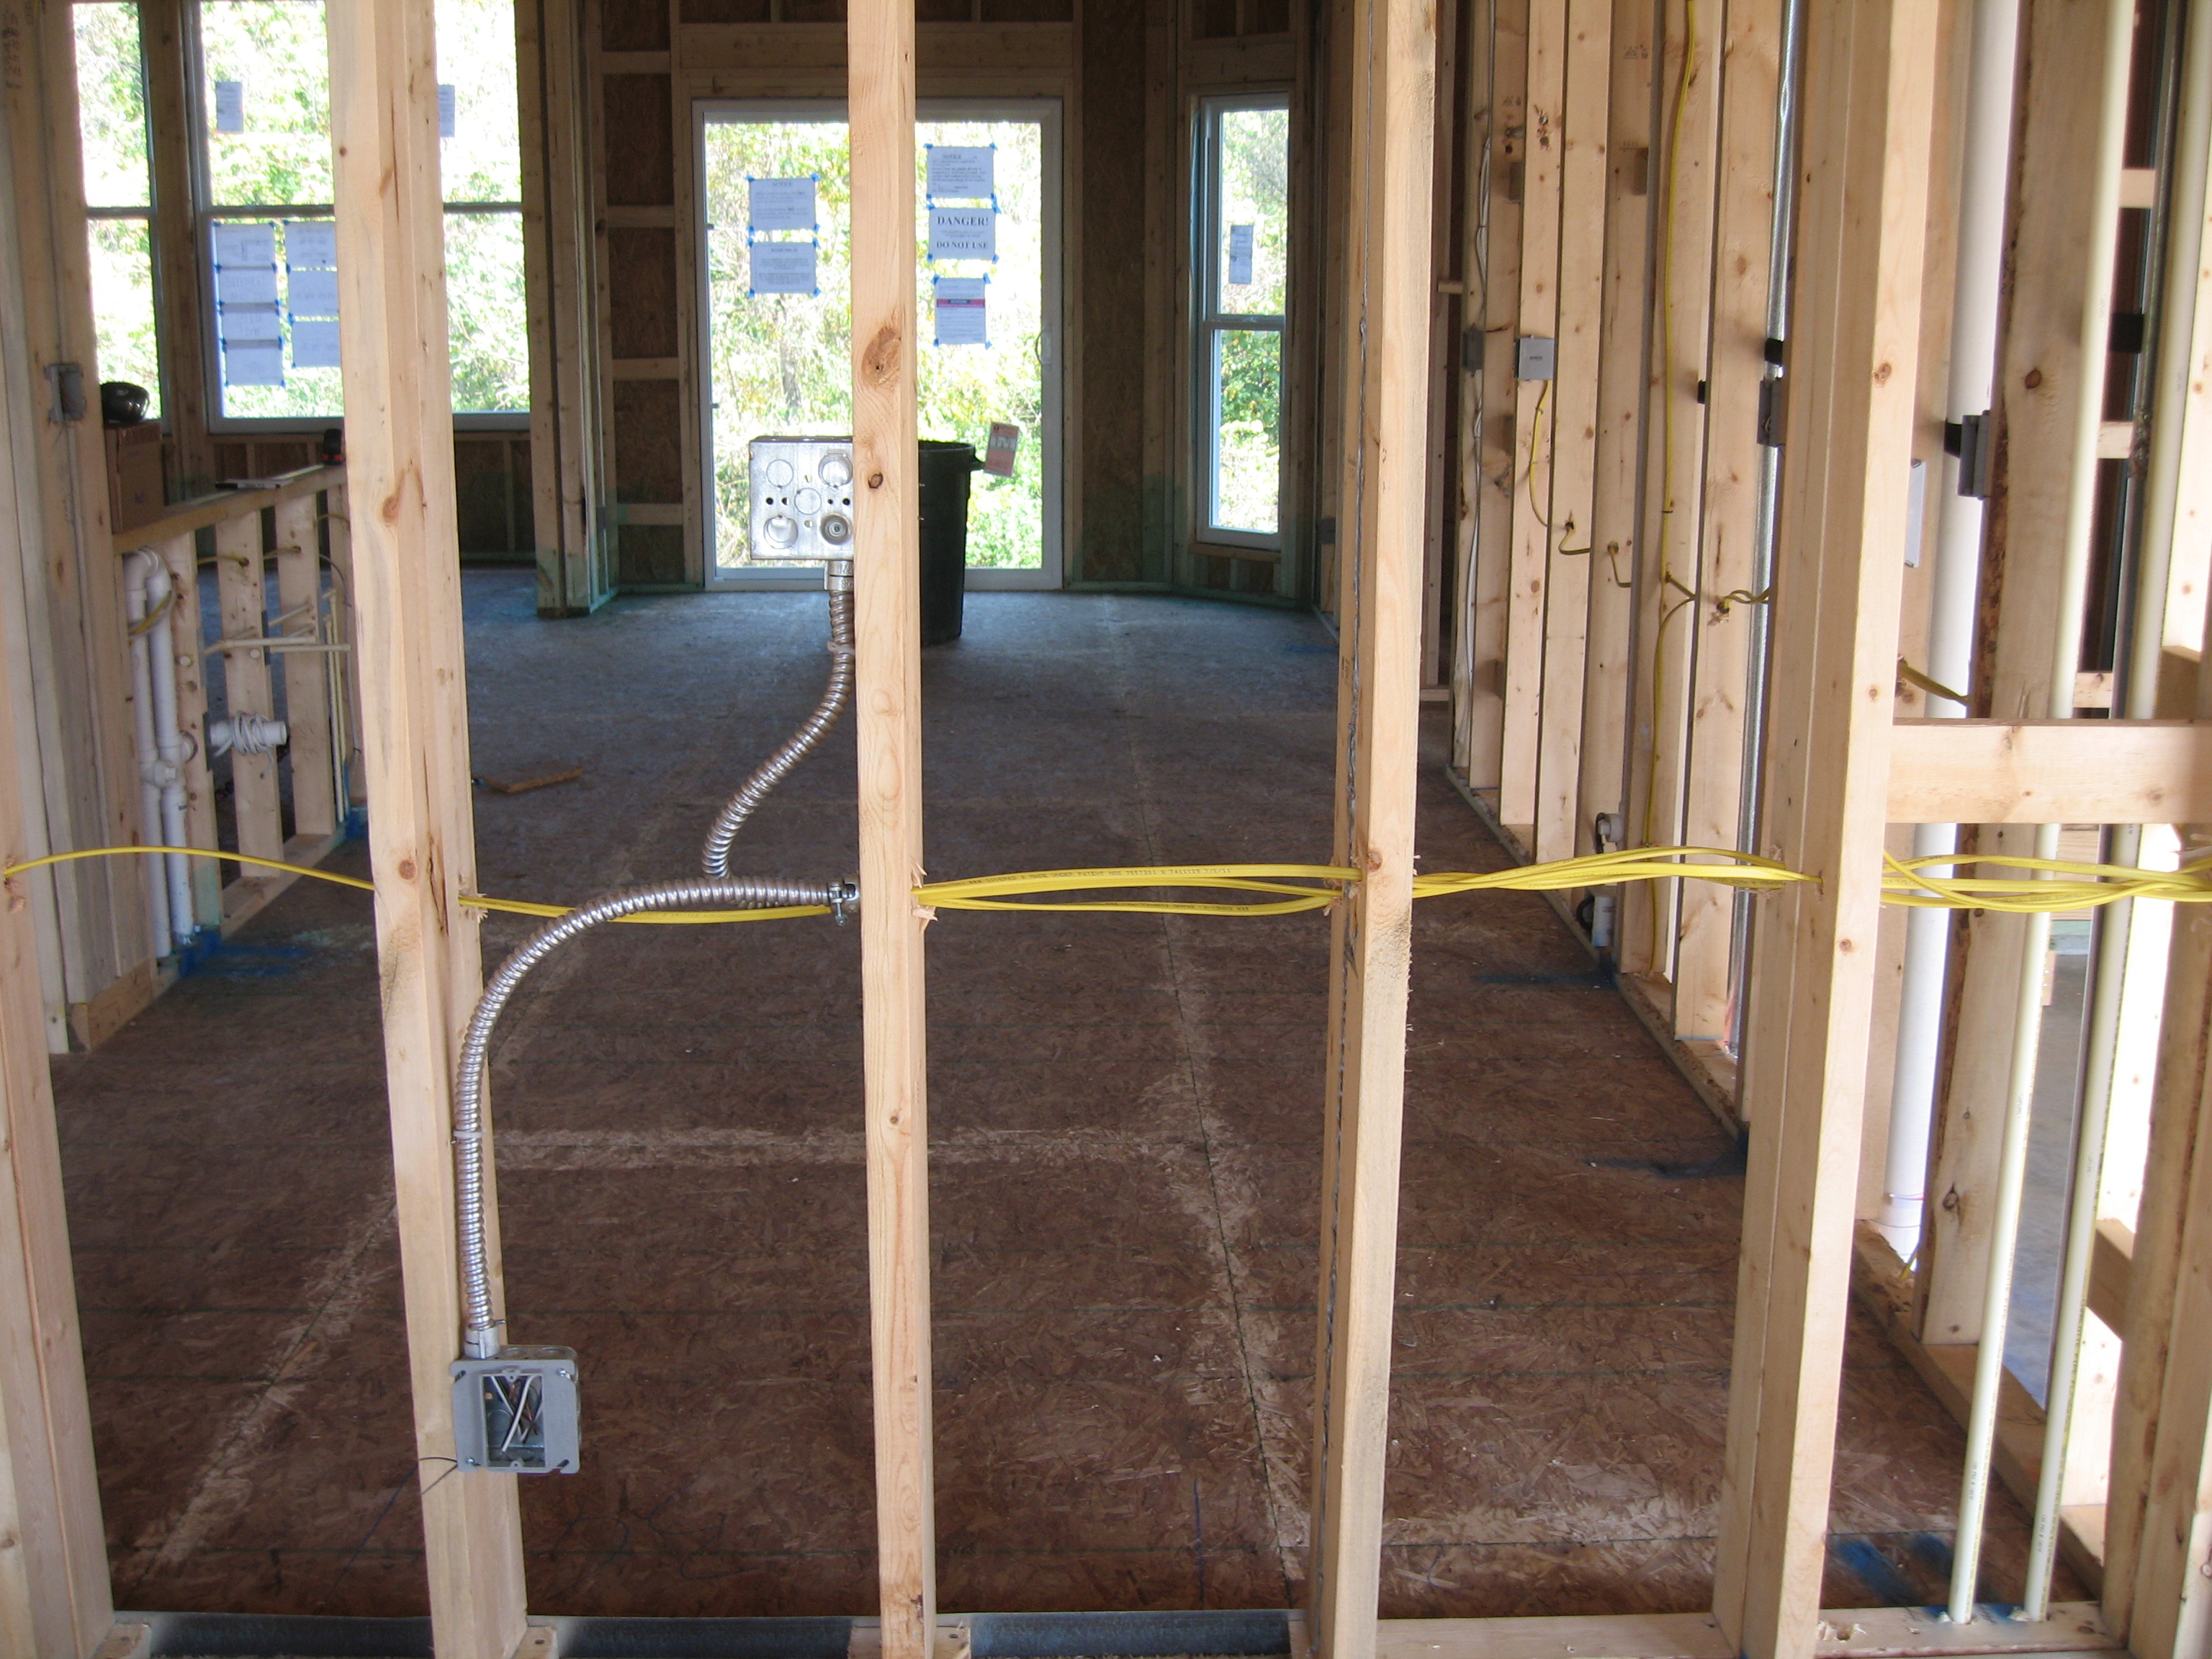 Electrical Wiring In Walls